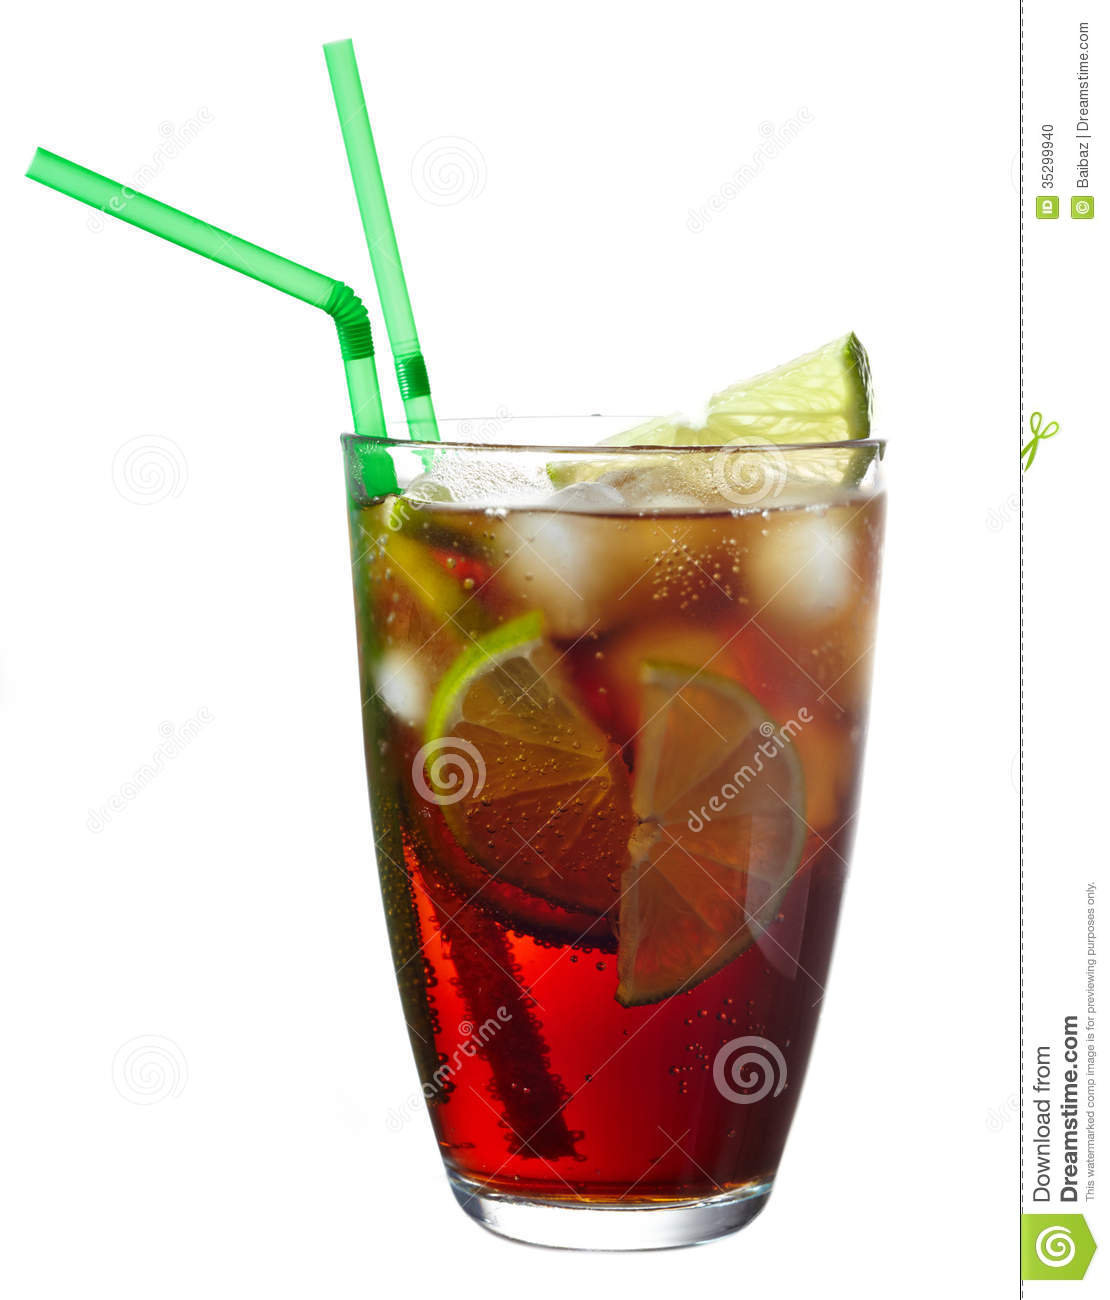 Cuba Libre Cocktail Cuba Libre Cocktail Stock Photo Image 35299940